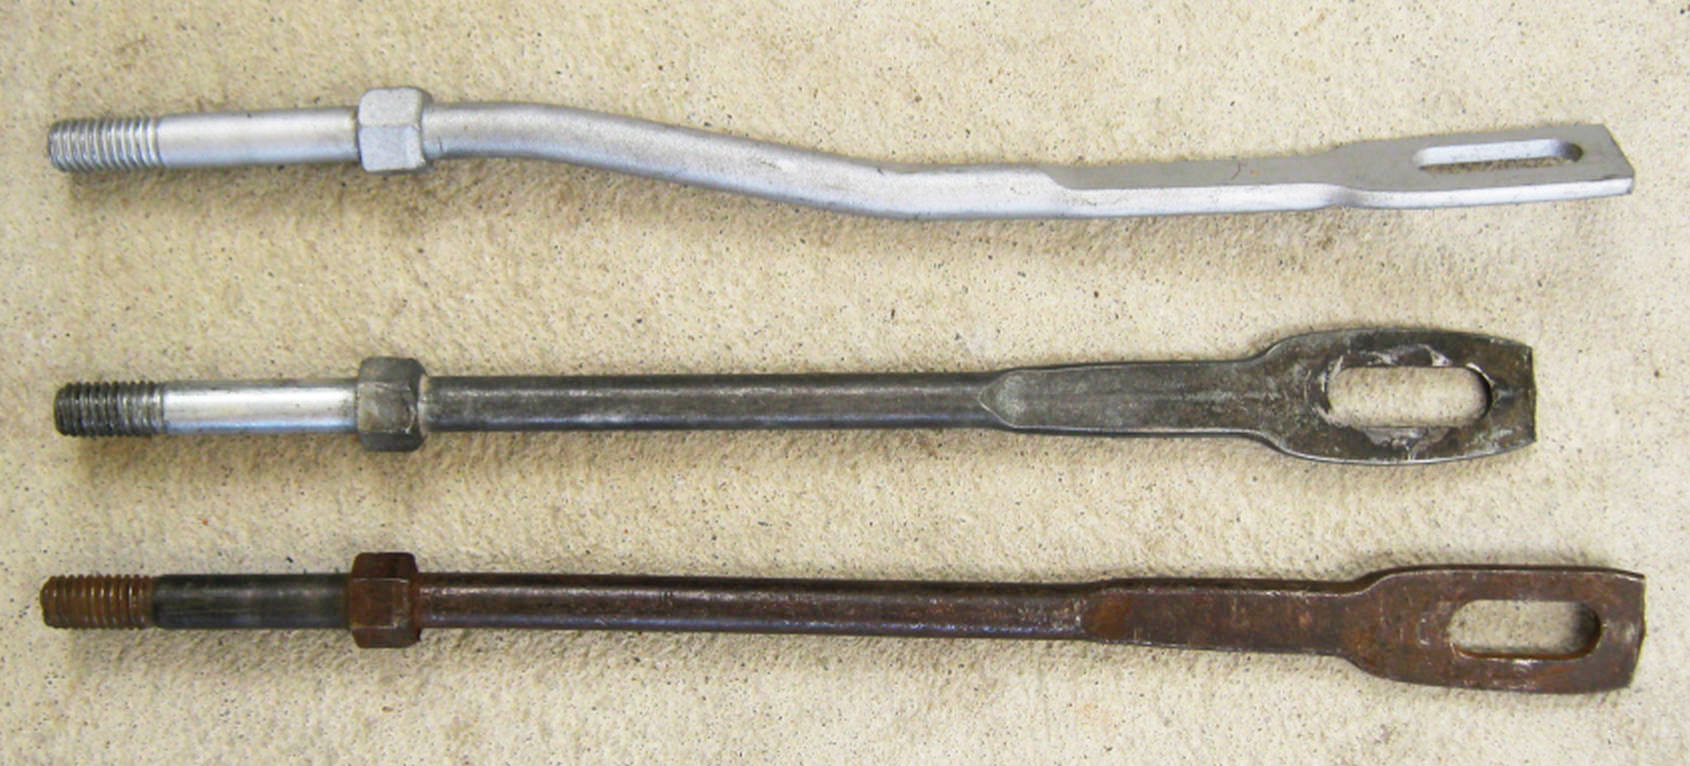 Saginaw and Muncie with SBC stabilizer rods